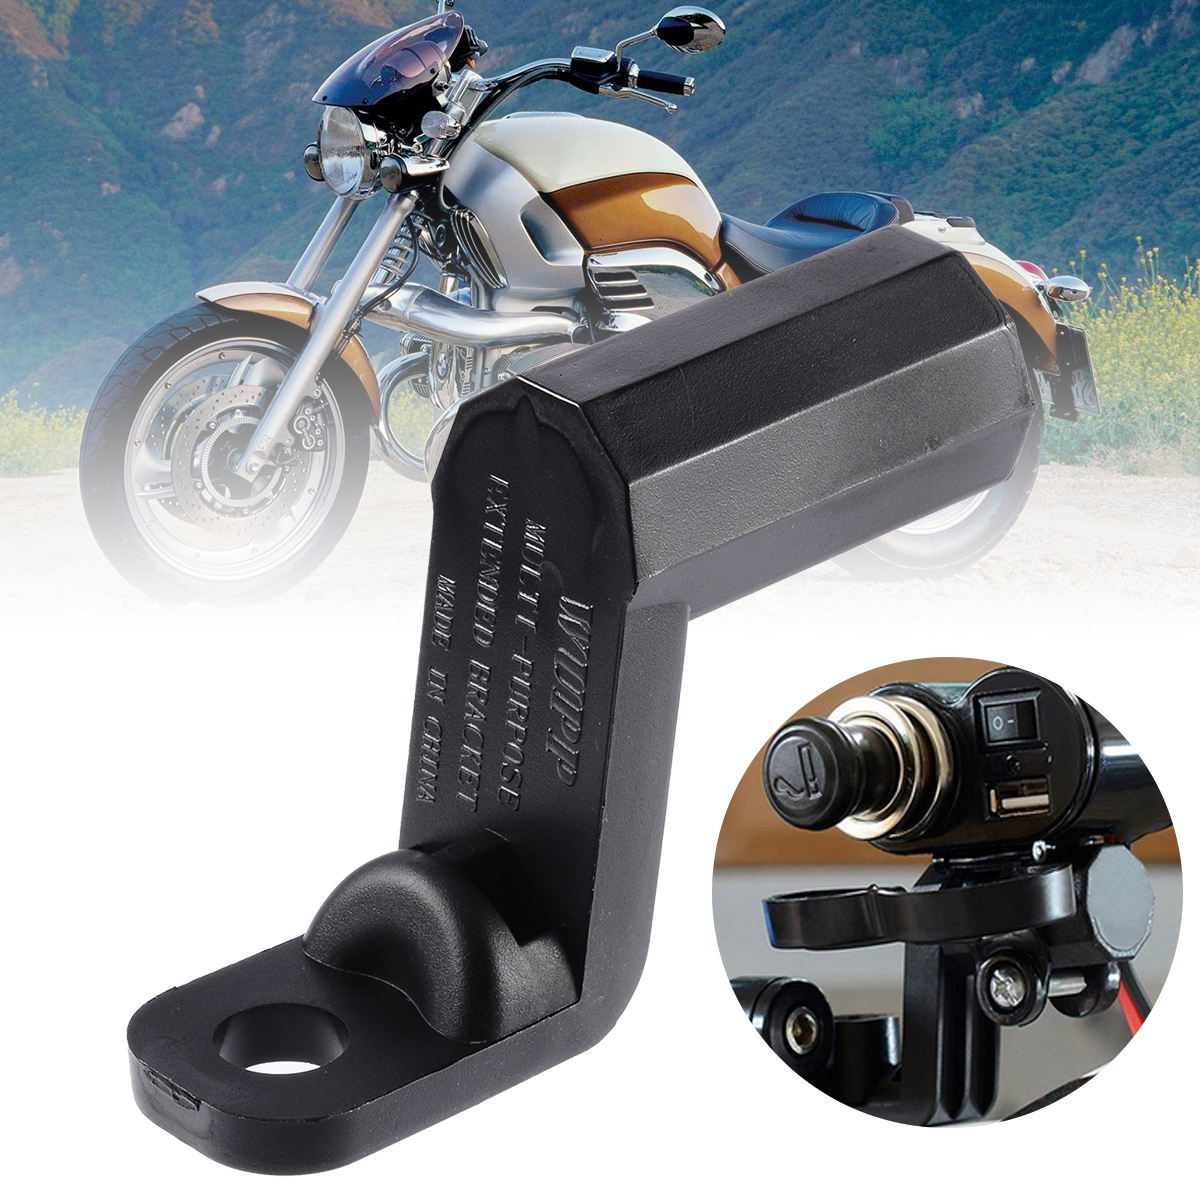 Mayitr 1pc Motorcycle Rearview Side Mirror Extender Bracket For Phone Holder Stands Mount Clamp Support